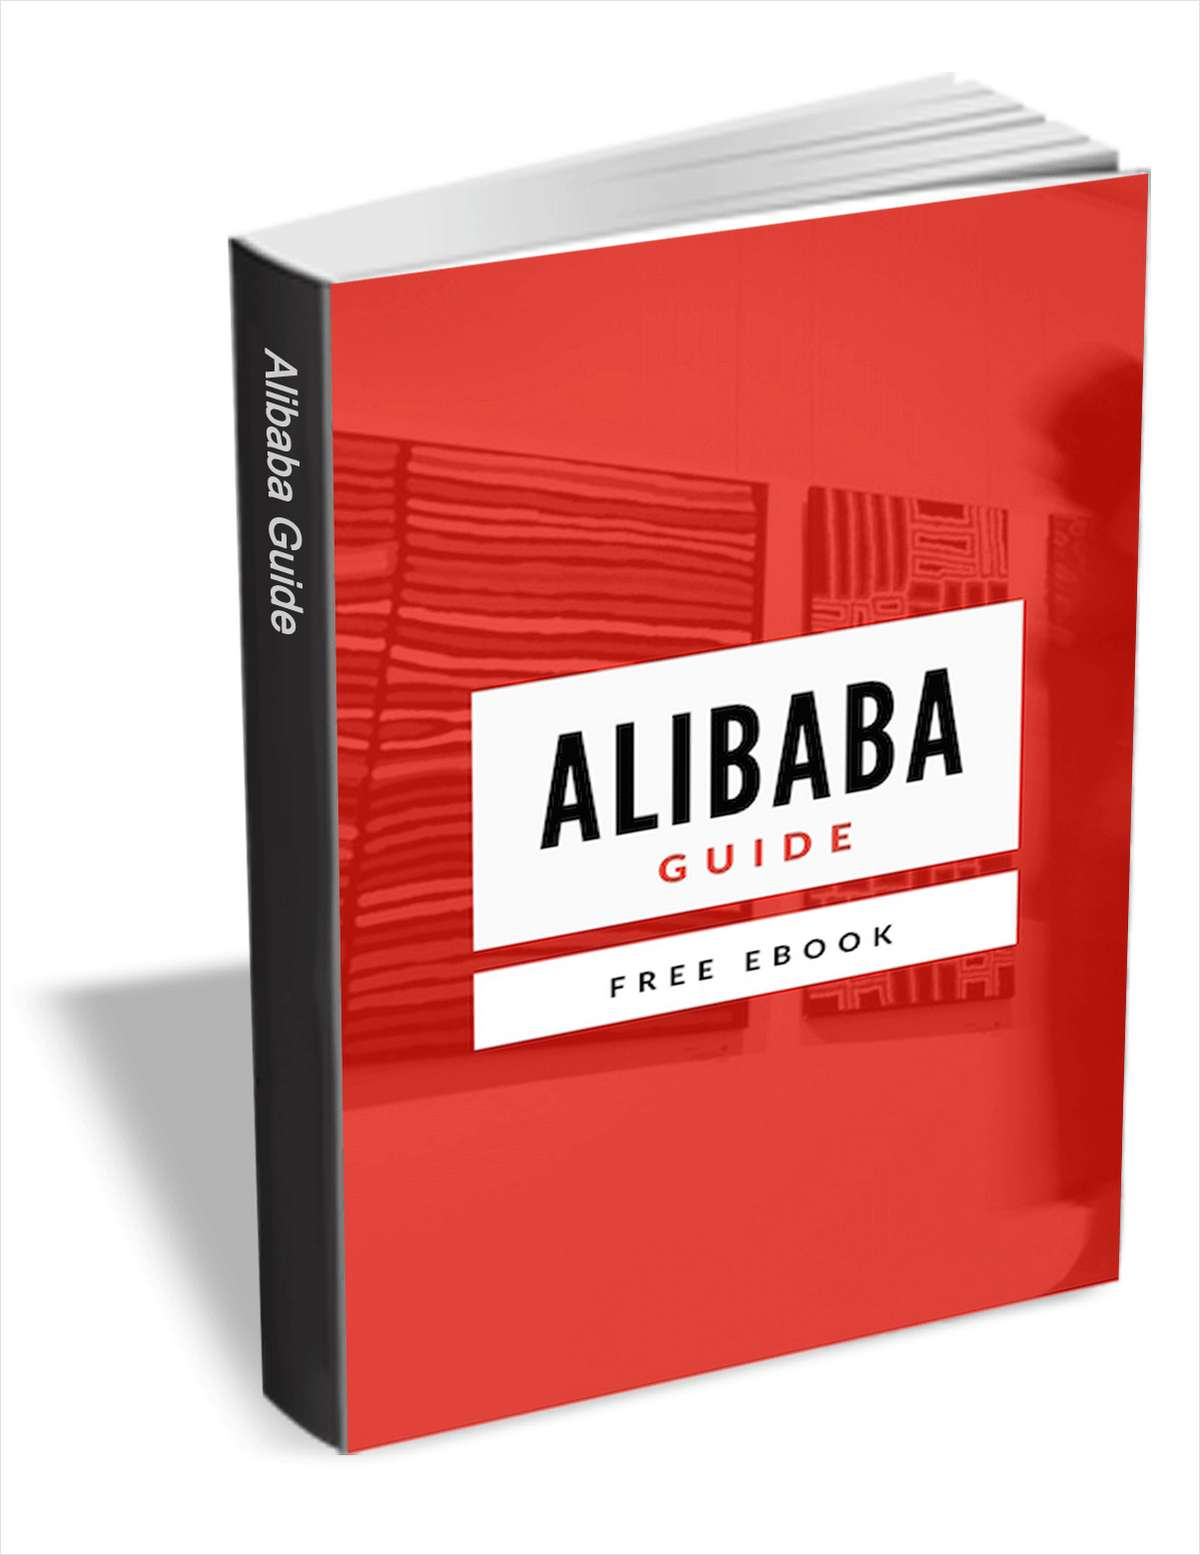 Alibaba Starter Guide - The Fundamentals of Alibaba